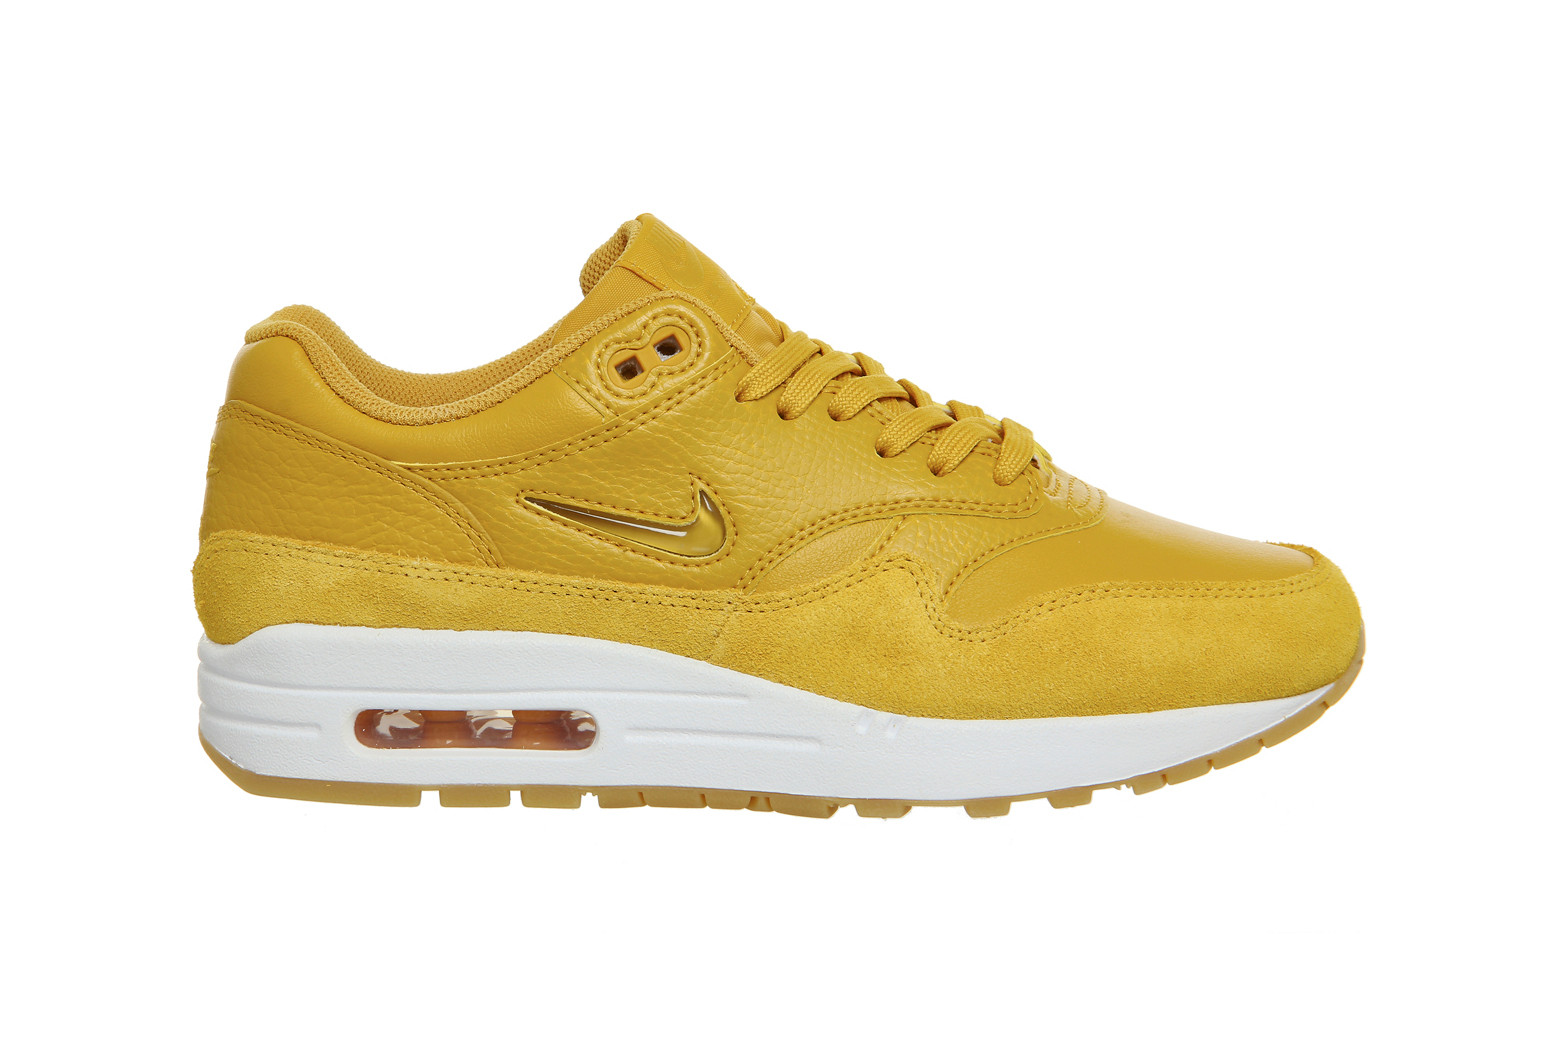 Air Max 1 Jewel in Mineral Yellow